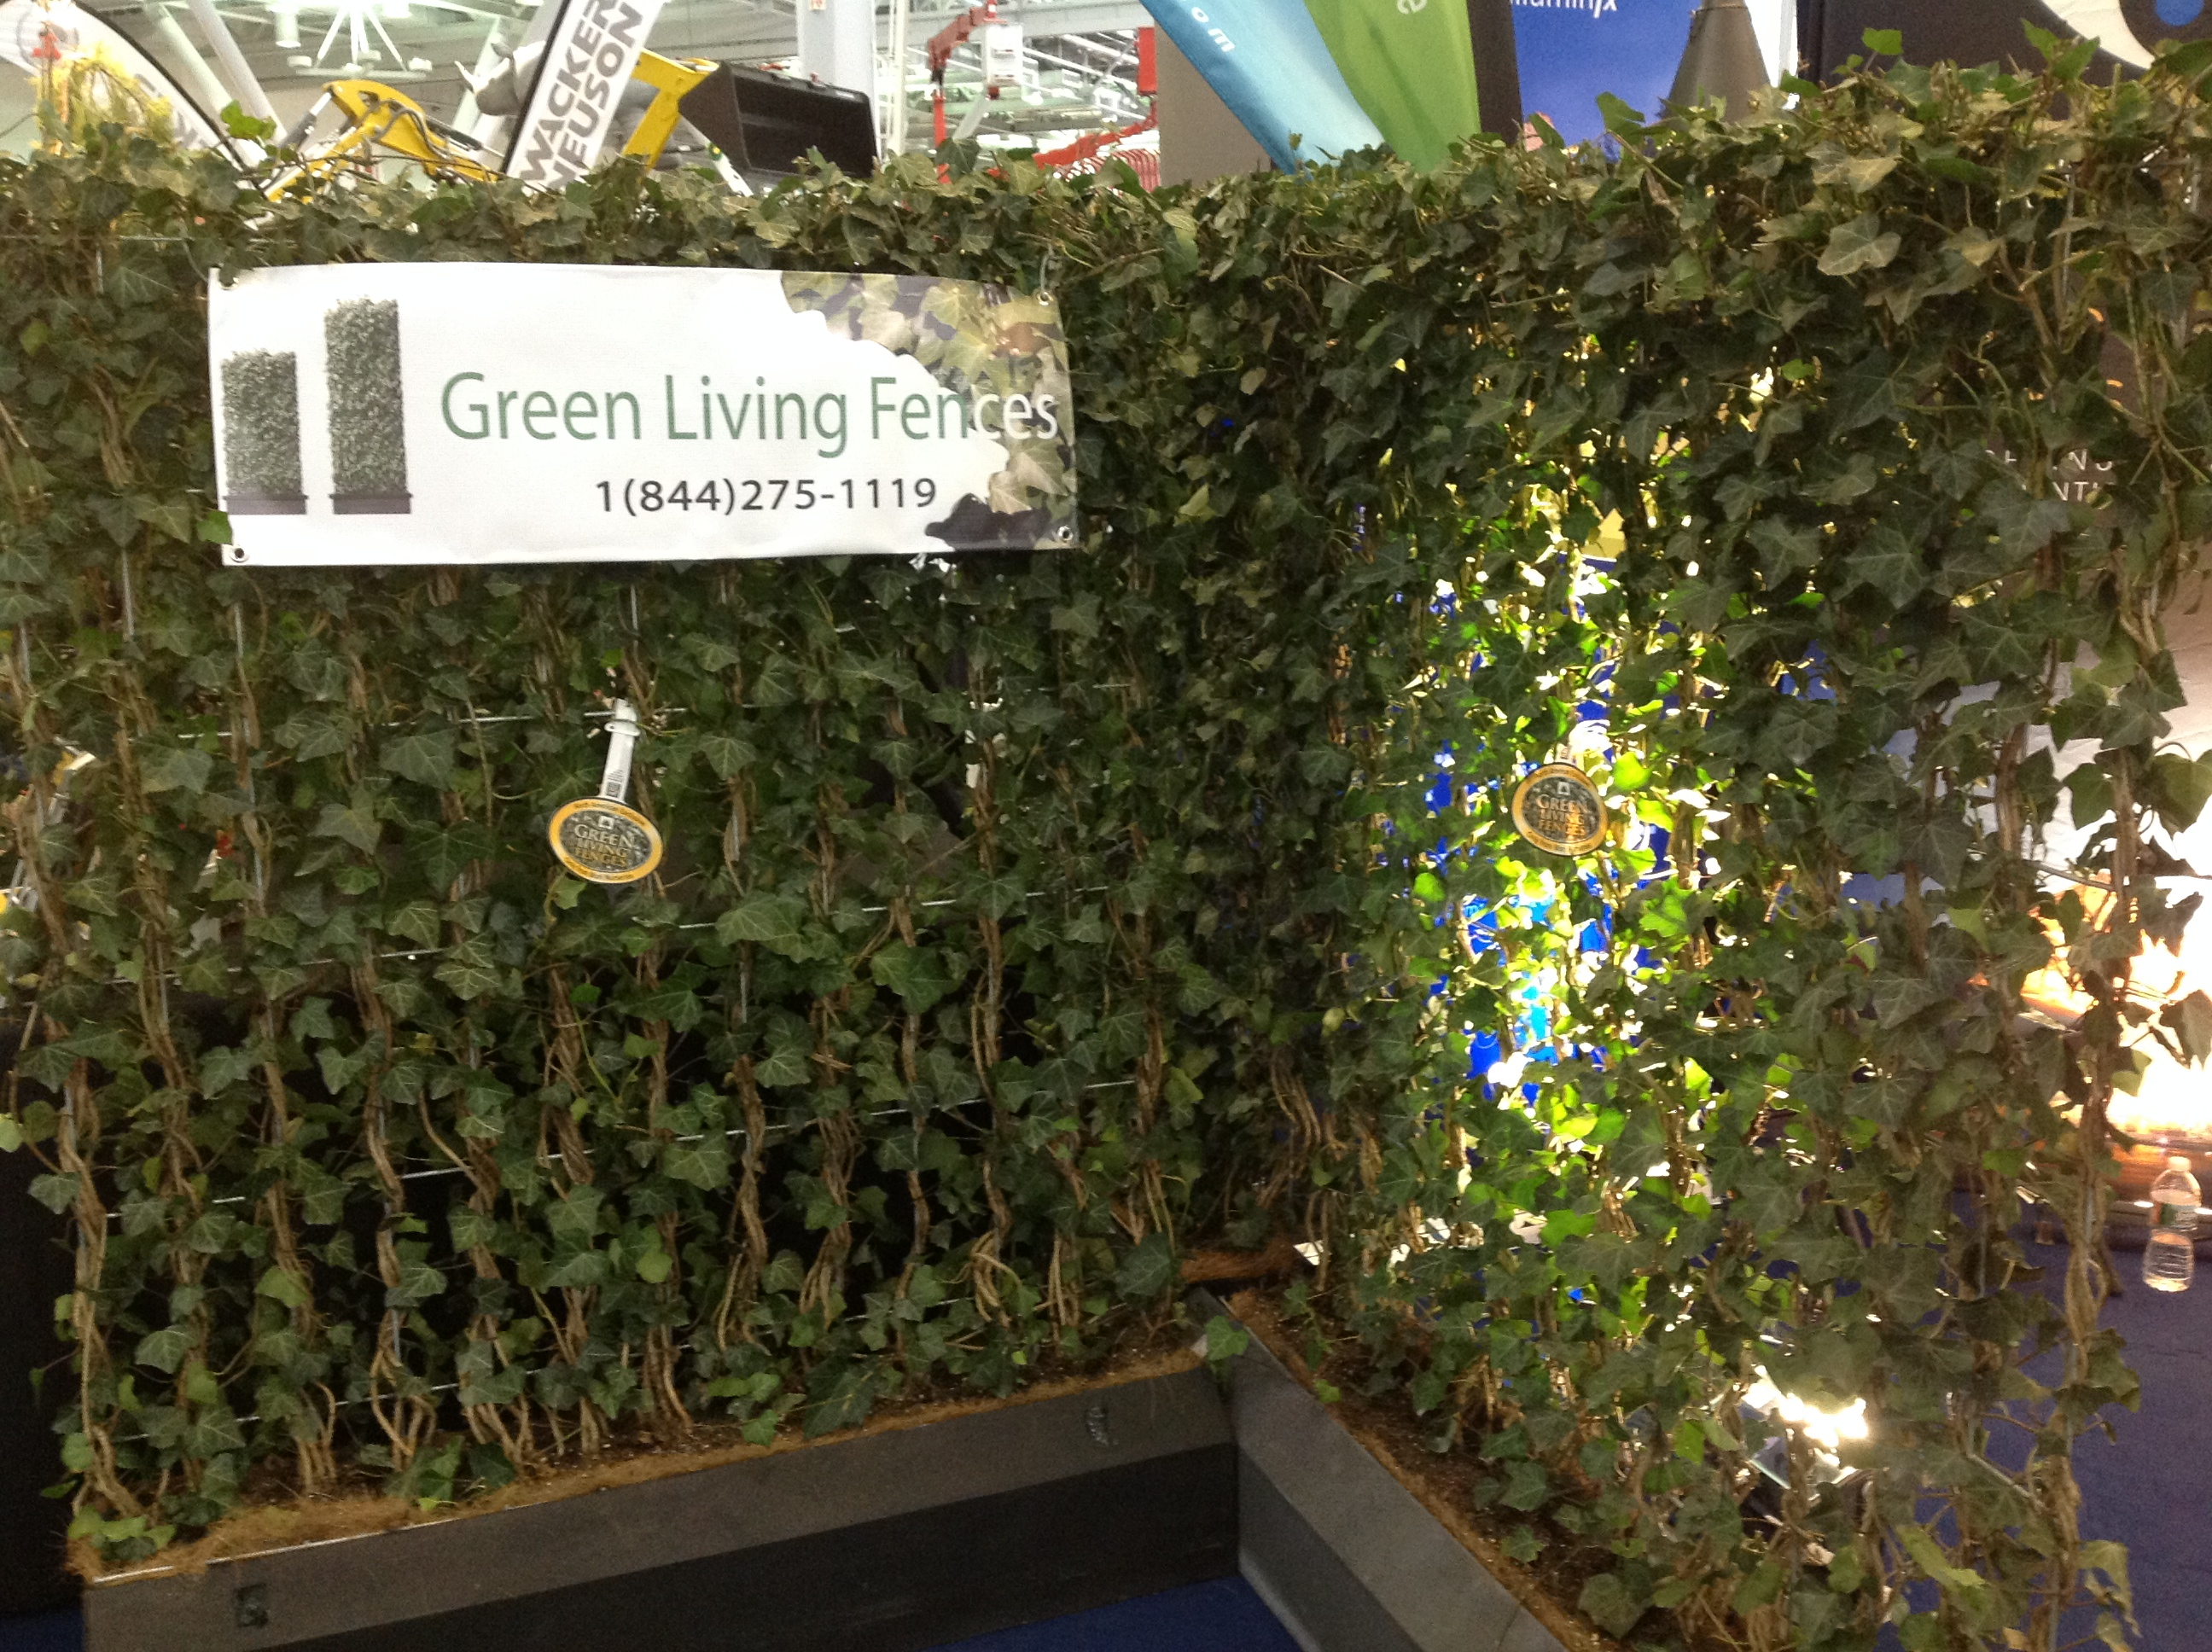 Green Living Fences: An Alternative to Arbor Vitae Soldiers ...